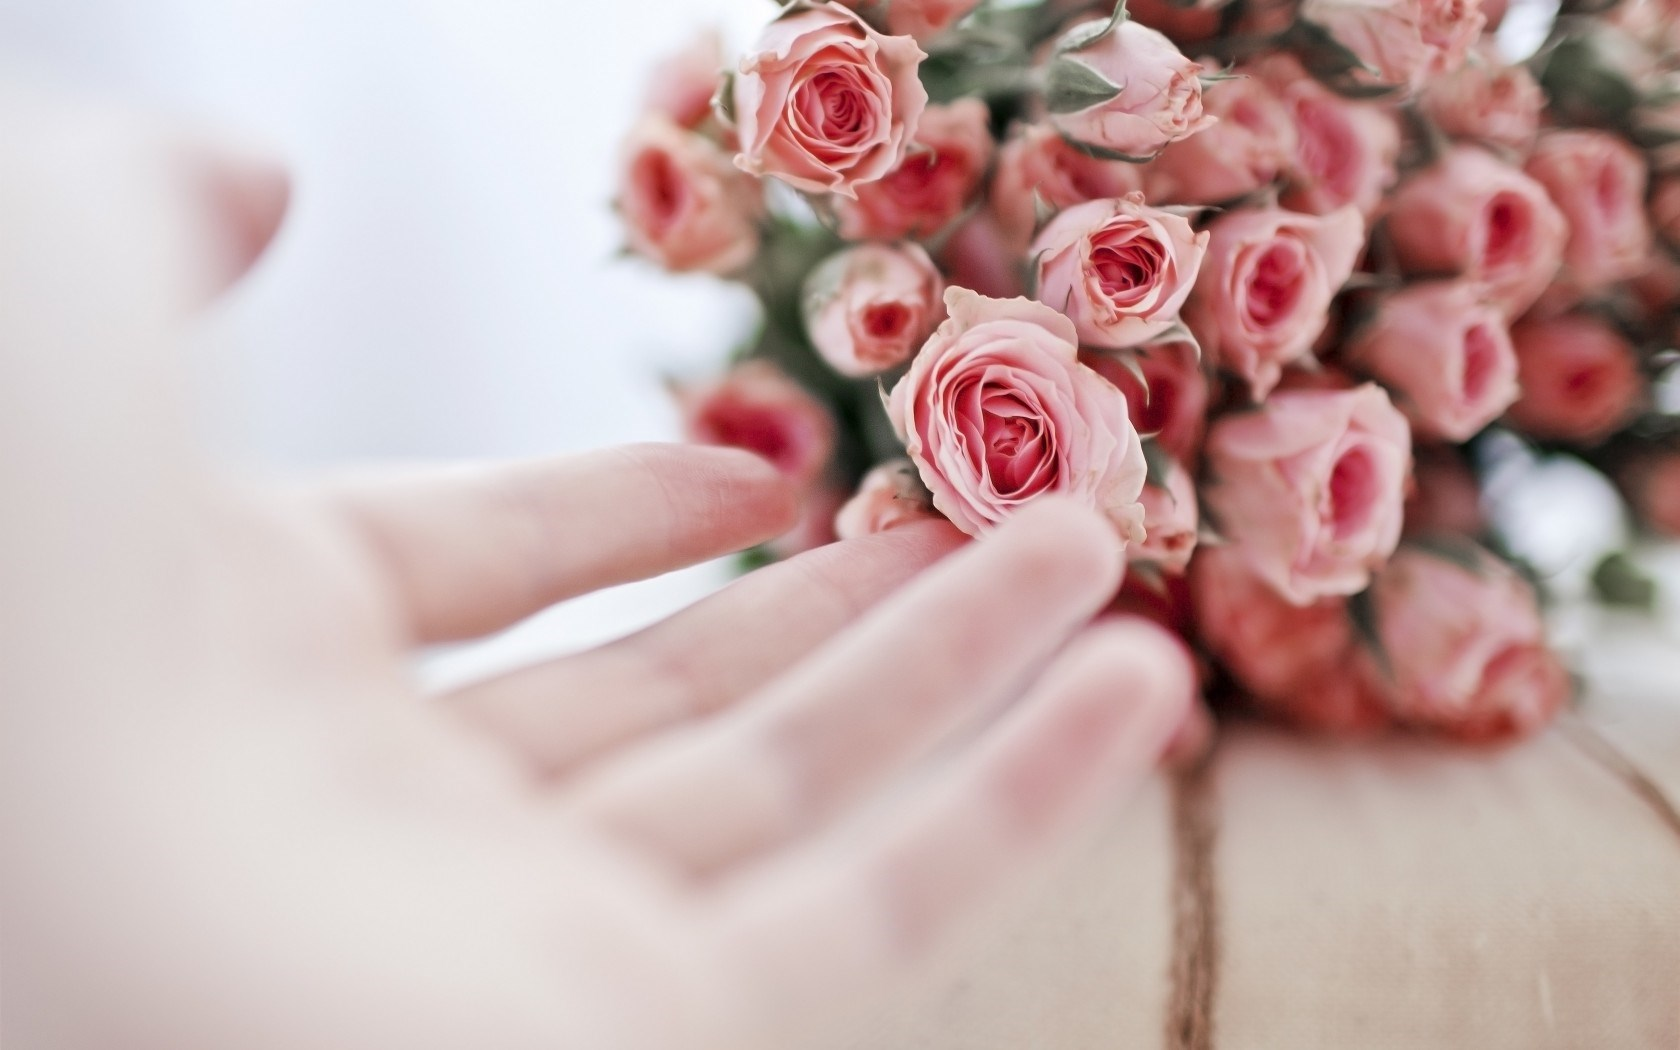 Roses Flowers Pink Hand Girl